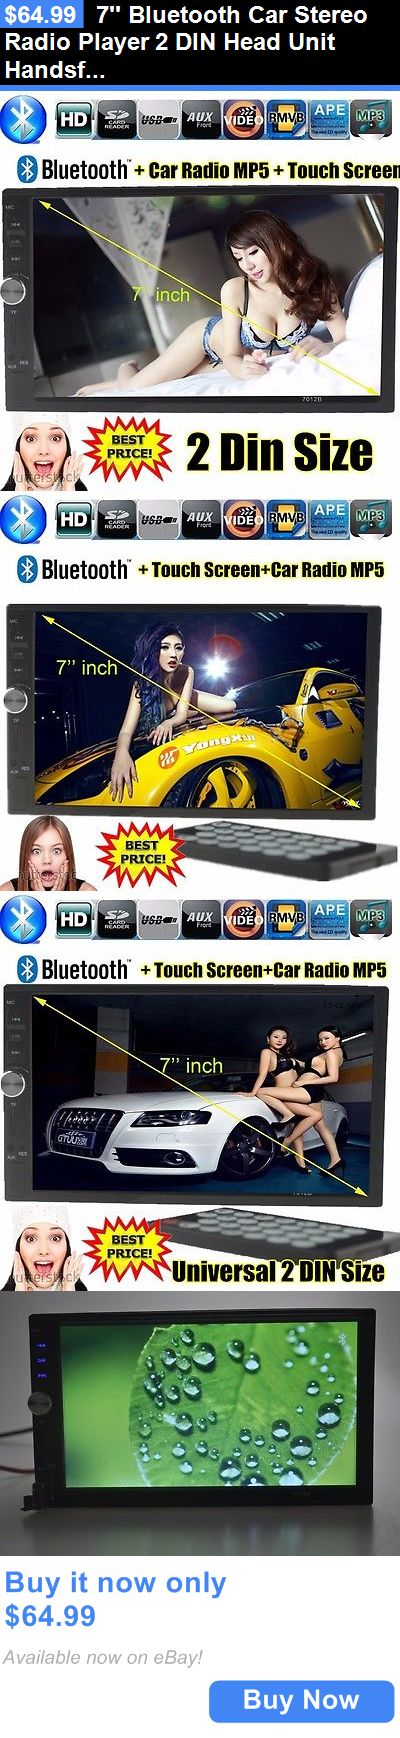 Vintage Radios: 7 Bluetooth Car Stereo Radio Player 2 Din Head Unit Handsfree Touch Screen Usb BUY IT NOW ONLY: $64.99